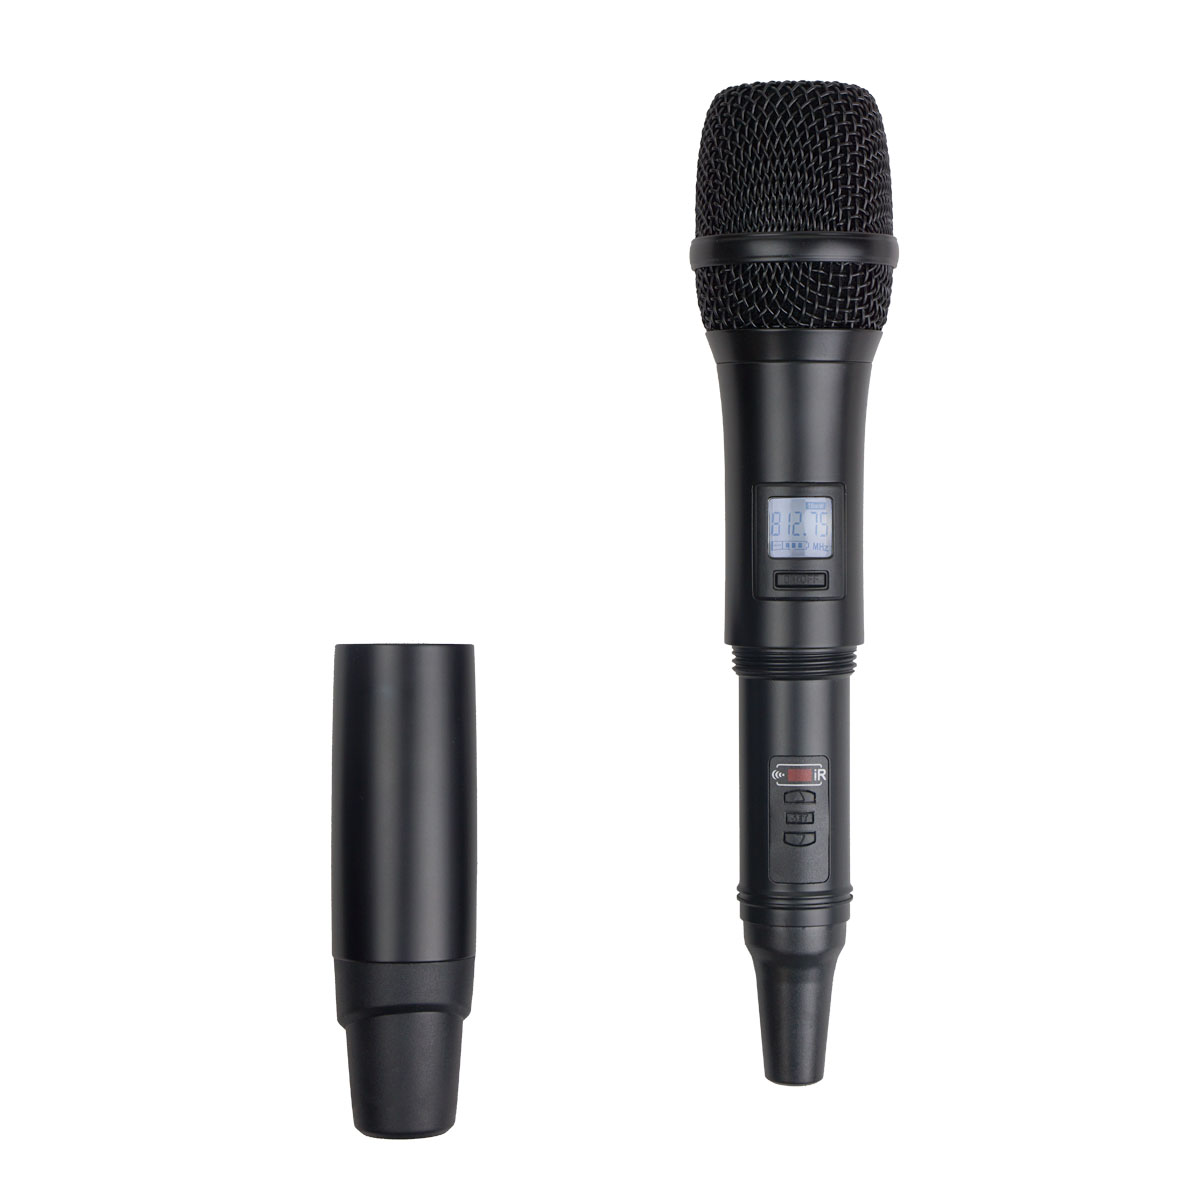 acesonic uhf 5800 dual wireless microphone with ir sync. Black Bedroom Furniture Sets. Home Design Ideas